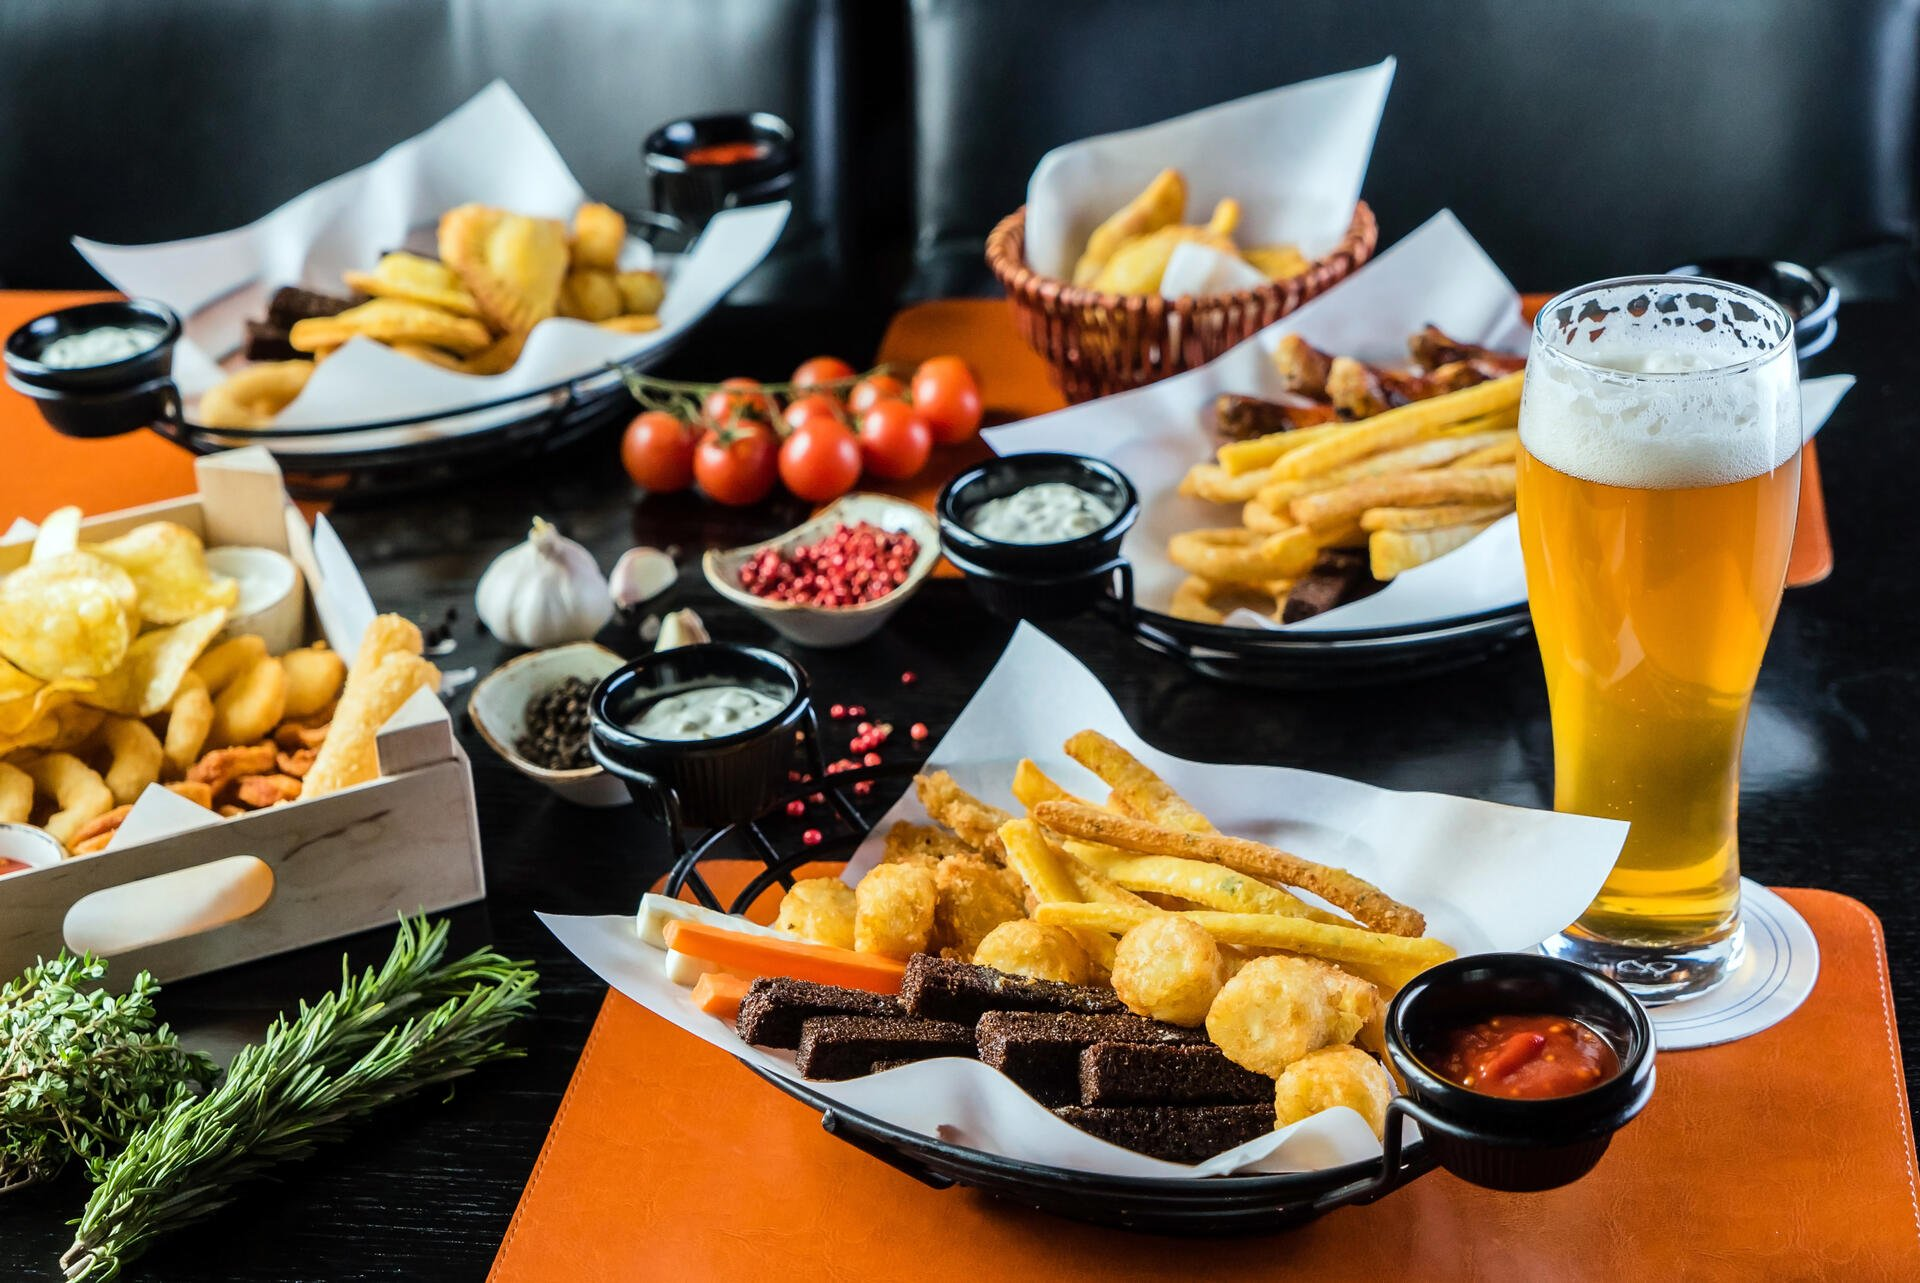 Tavern food, with fries and beer.